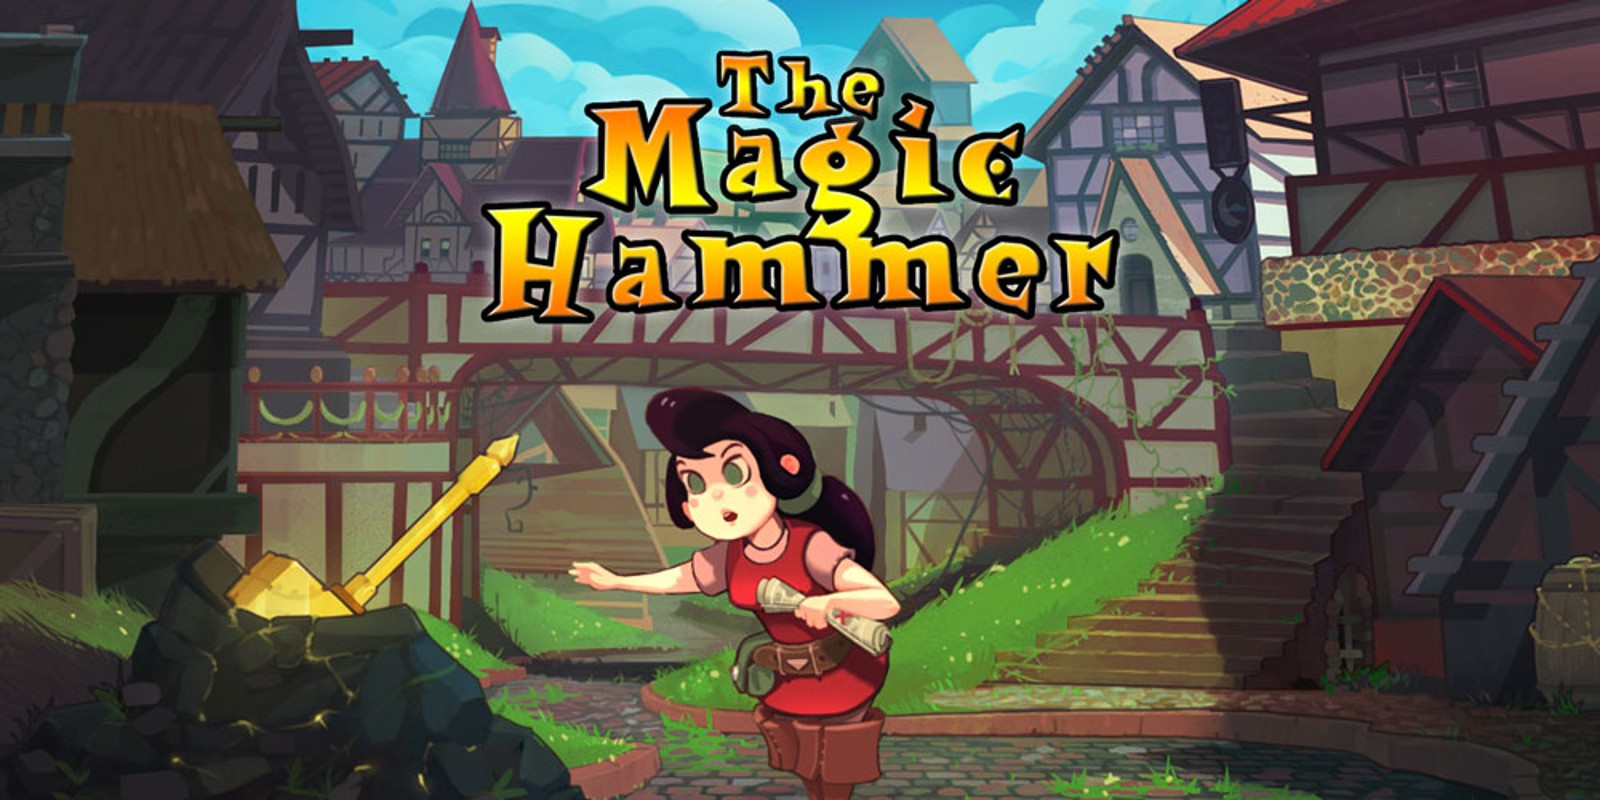 The Magic Hammer